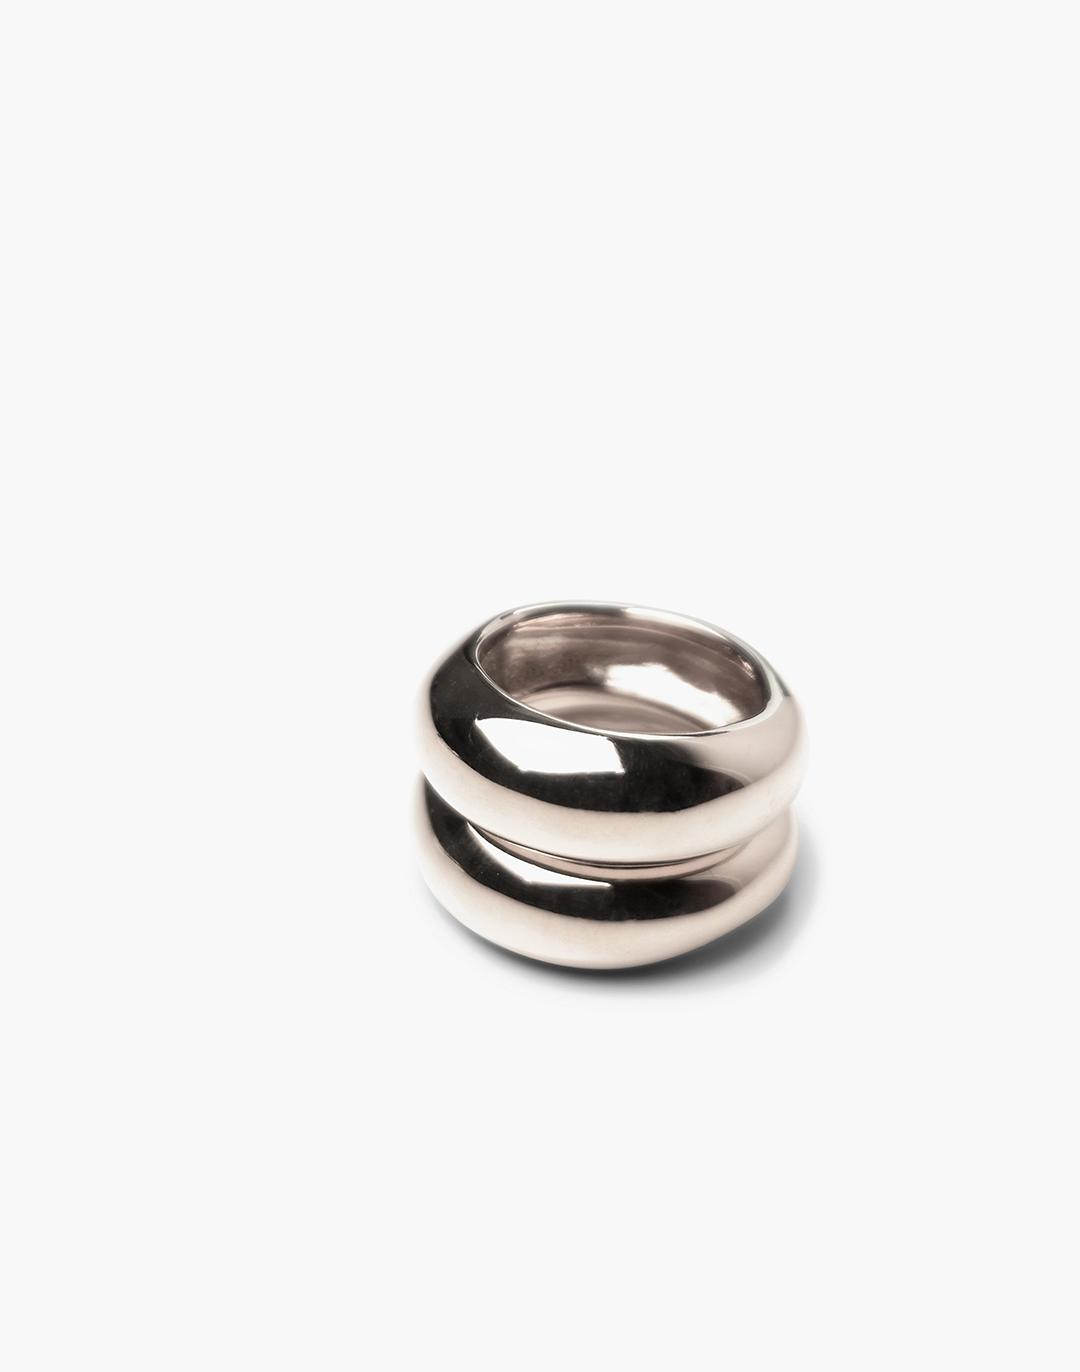 CHARLOTTE CAUWE STUDIO Bubble Ring Set In Sterling Silver